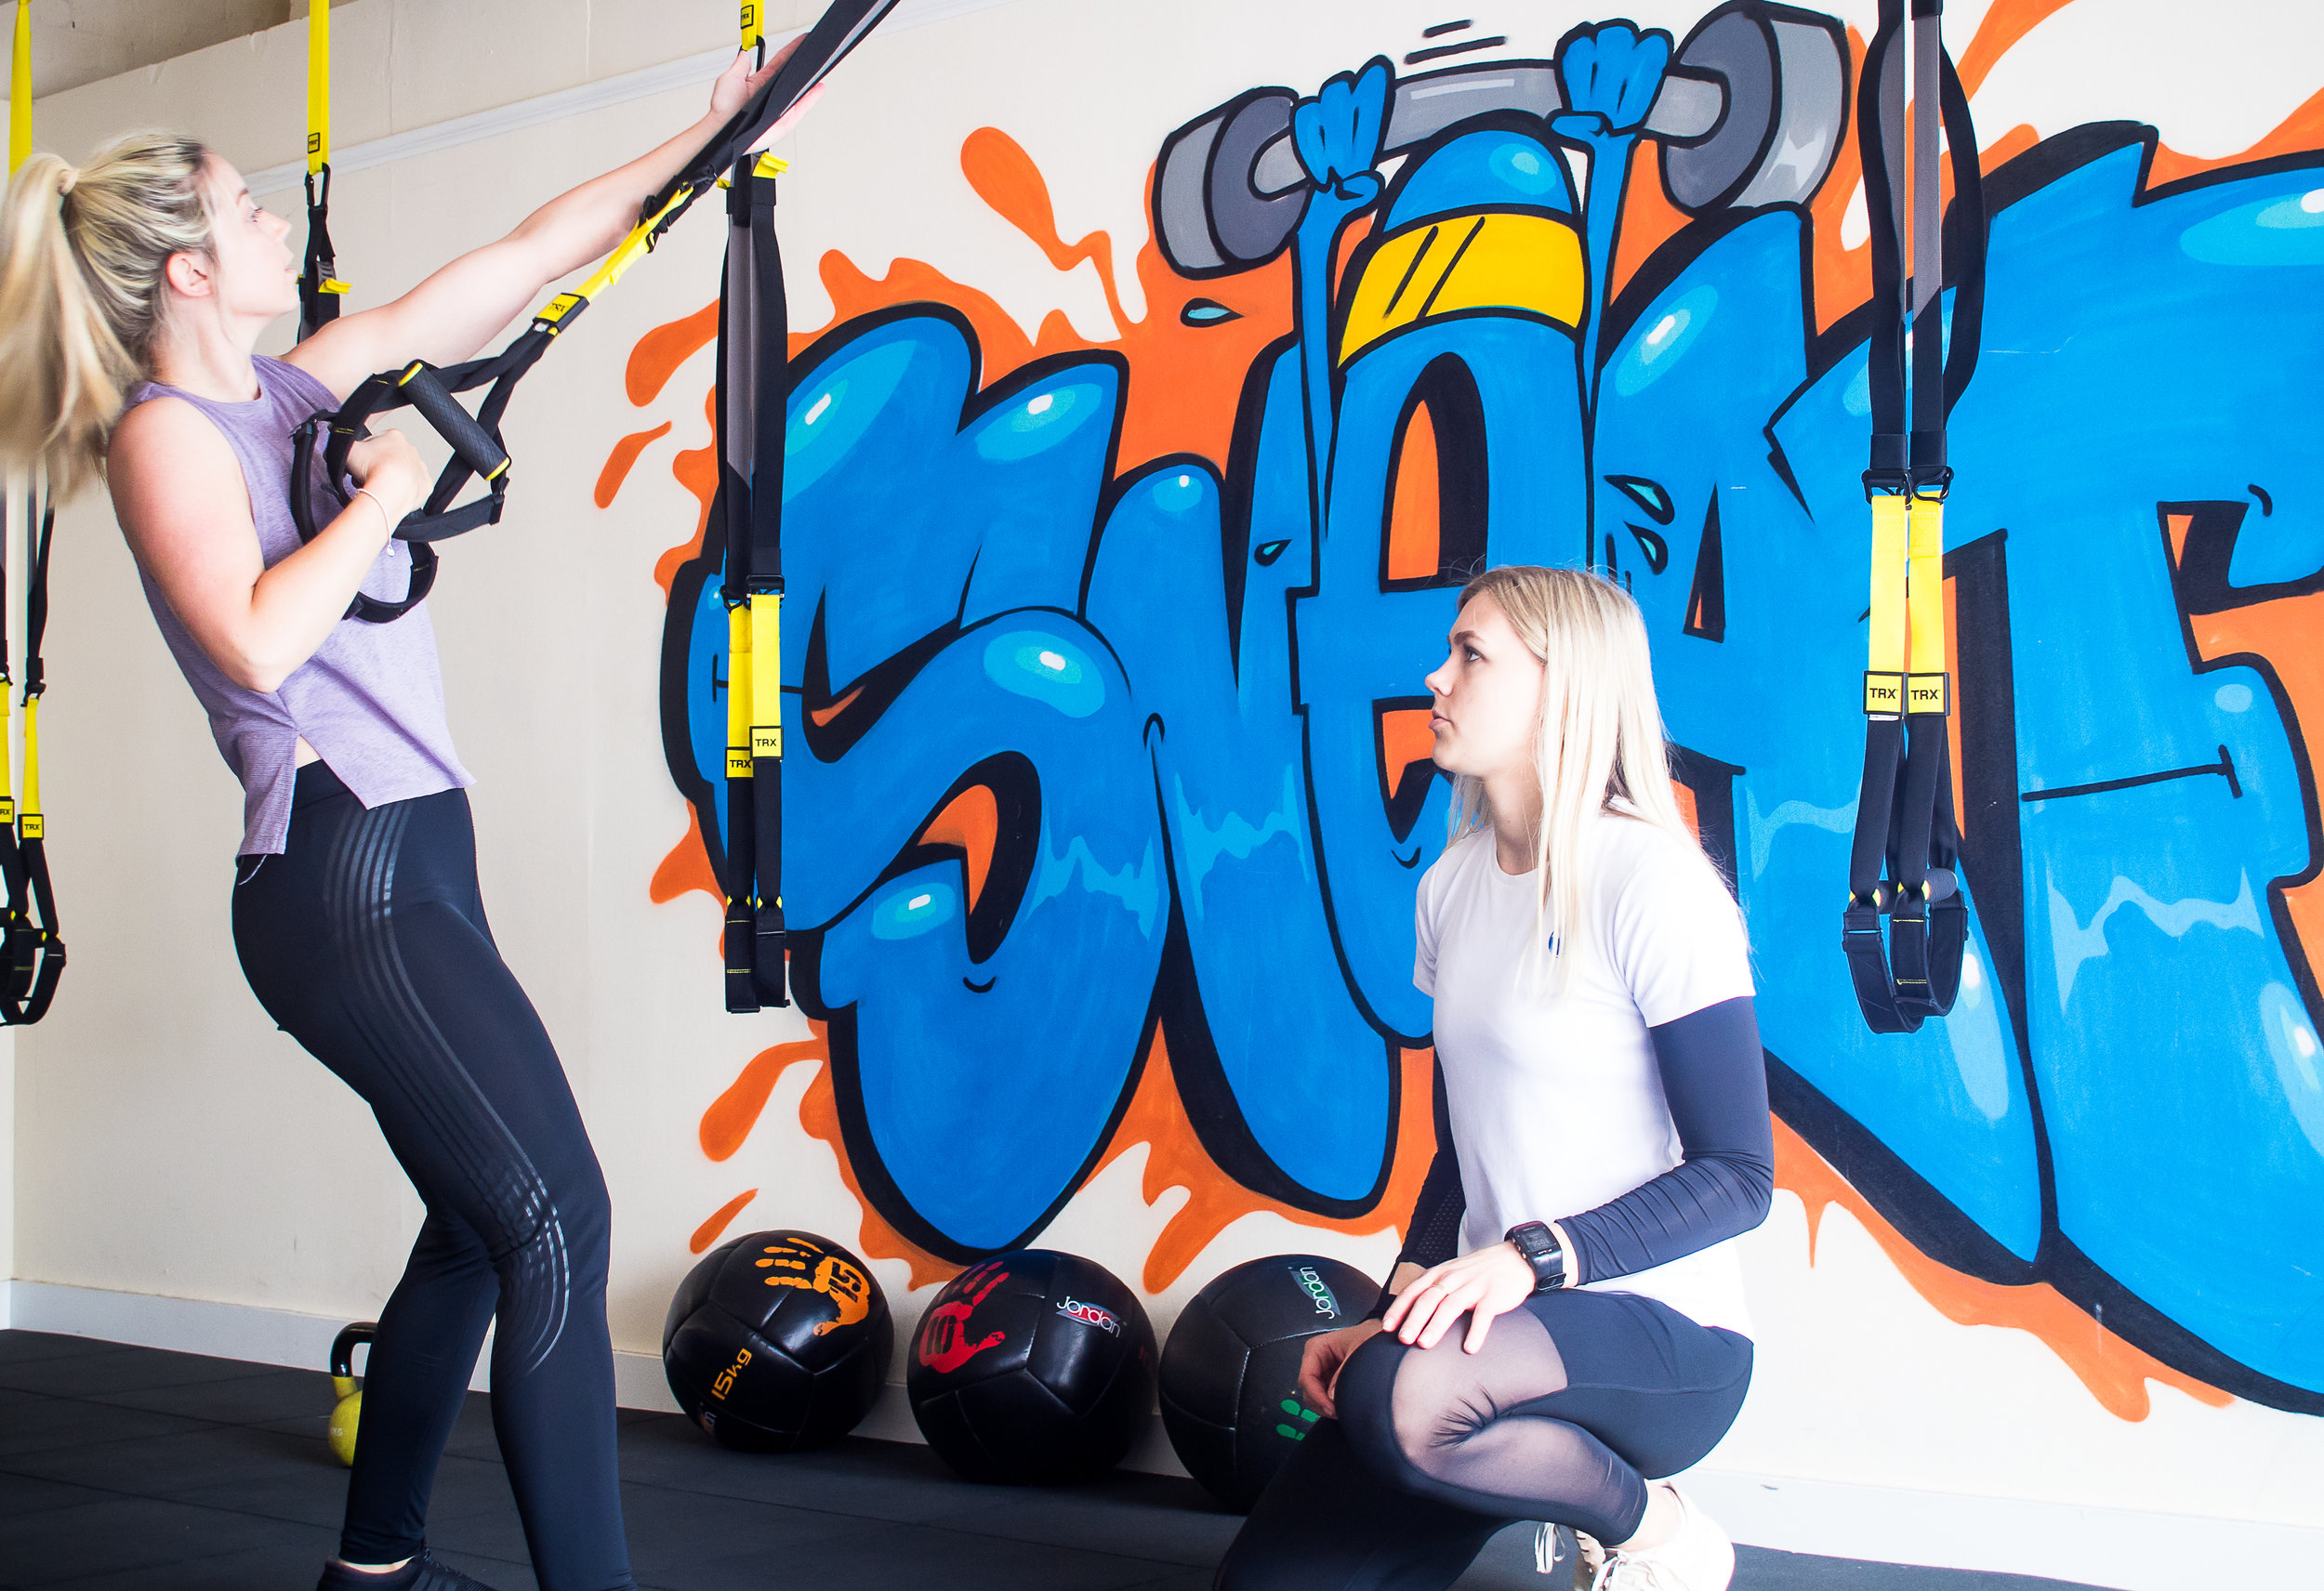 Personal Training - Personal training at SWEAT Southsea means working 1-1 with highly-skilled and committed professionals to help you achieve your individual goals in an environment free from the typical gym crowds or any additional fees.